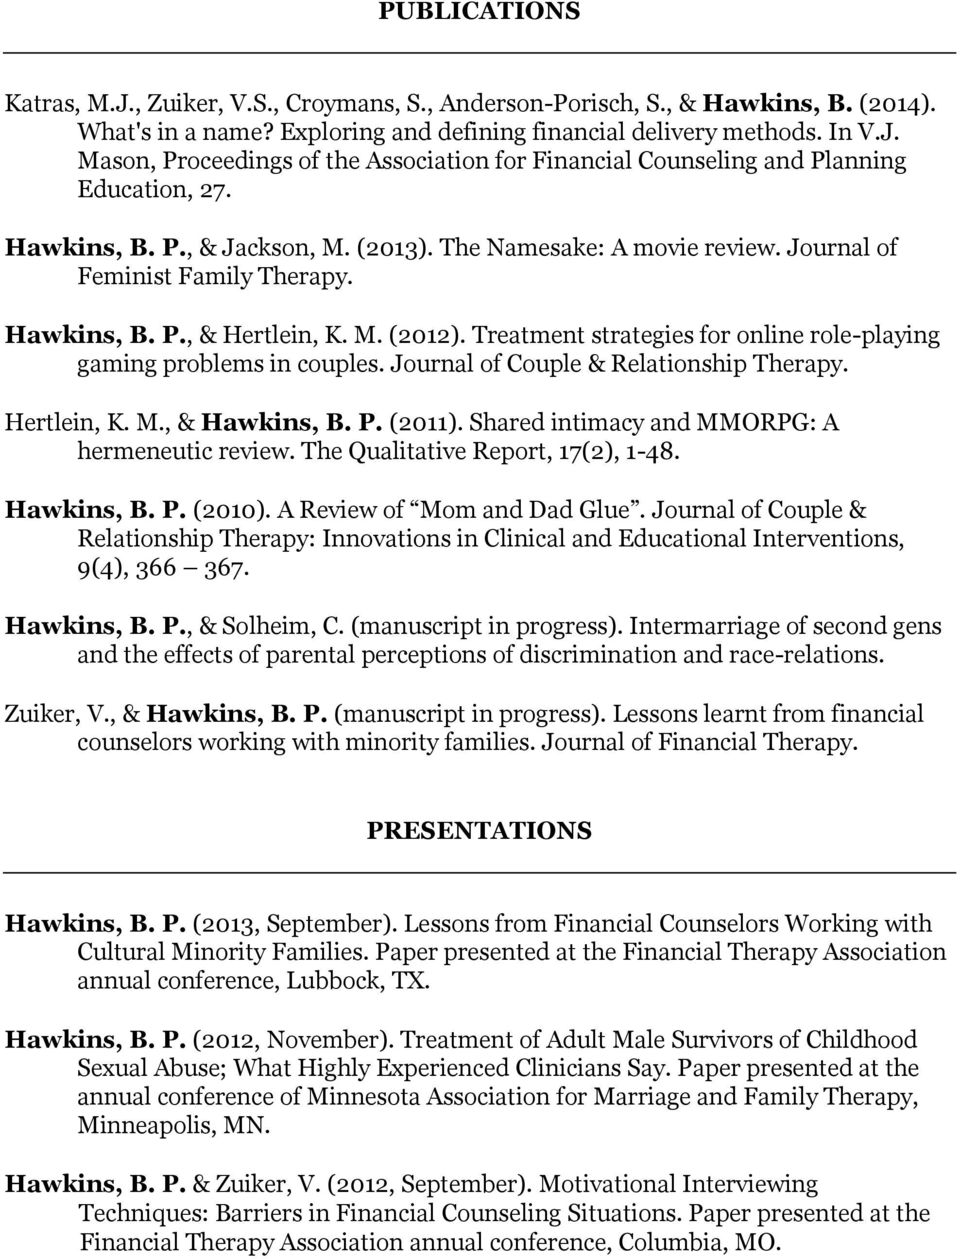 Treatment strategies for online role-playing gaming problems in couples. Journal of Couple & Relationship Therapy. Hertlein, K. M., & Hawkins, B. P. (2011).